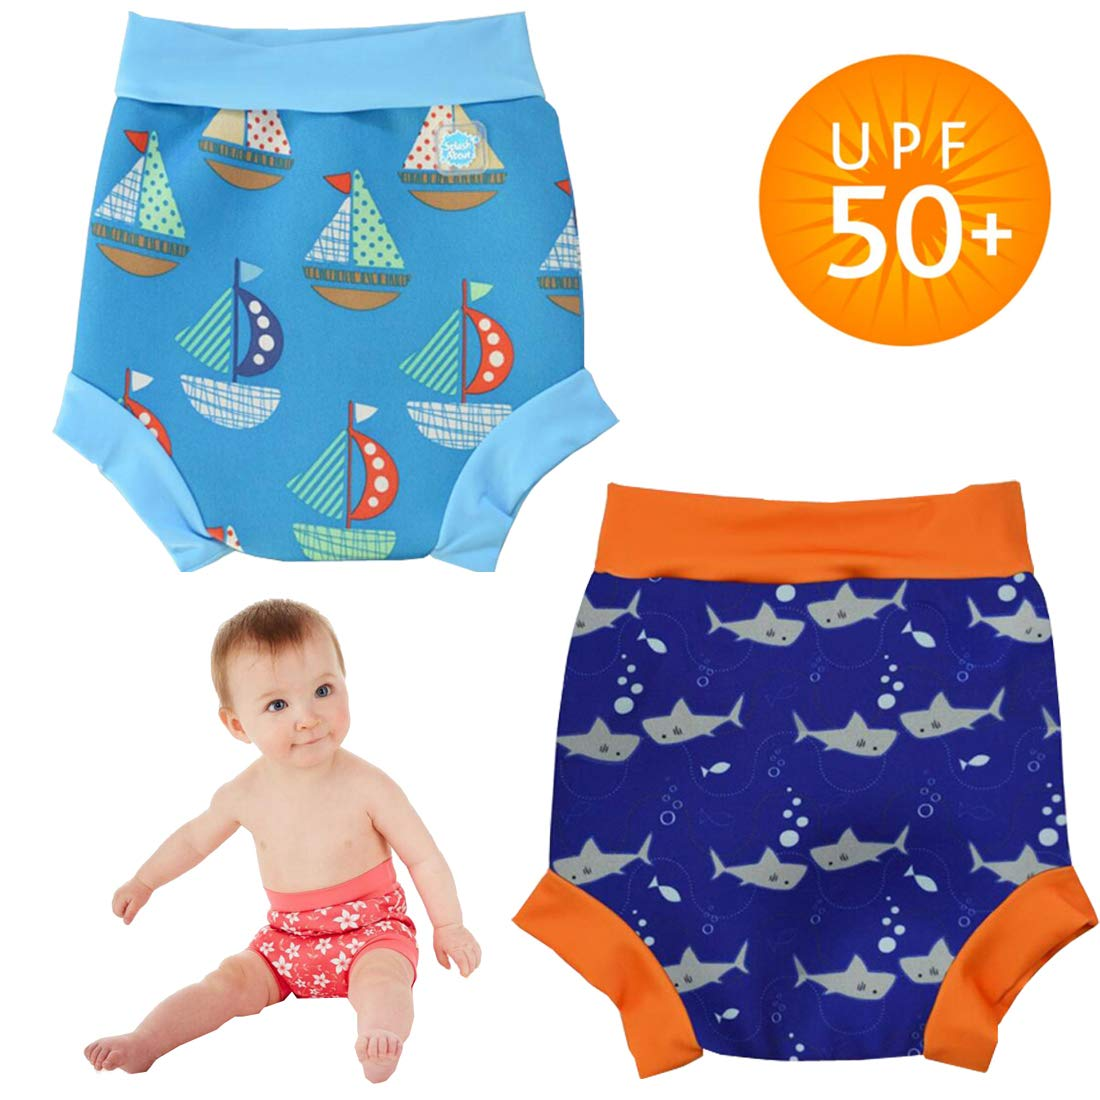 Baby Swimwear High-Waist Swim Trunks Eco-Friendly Swimming Shorts For Baby Boys